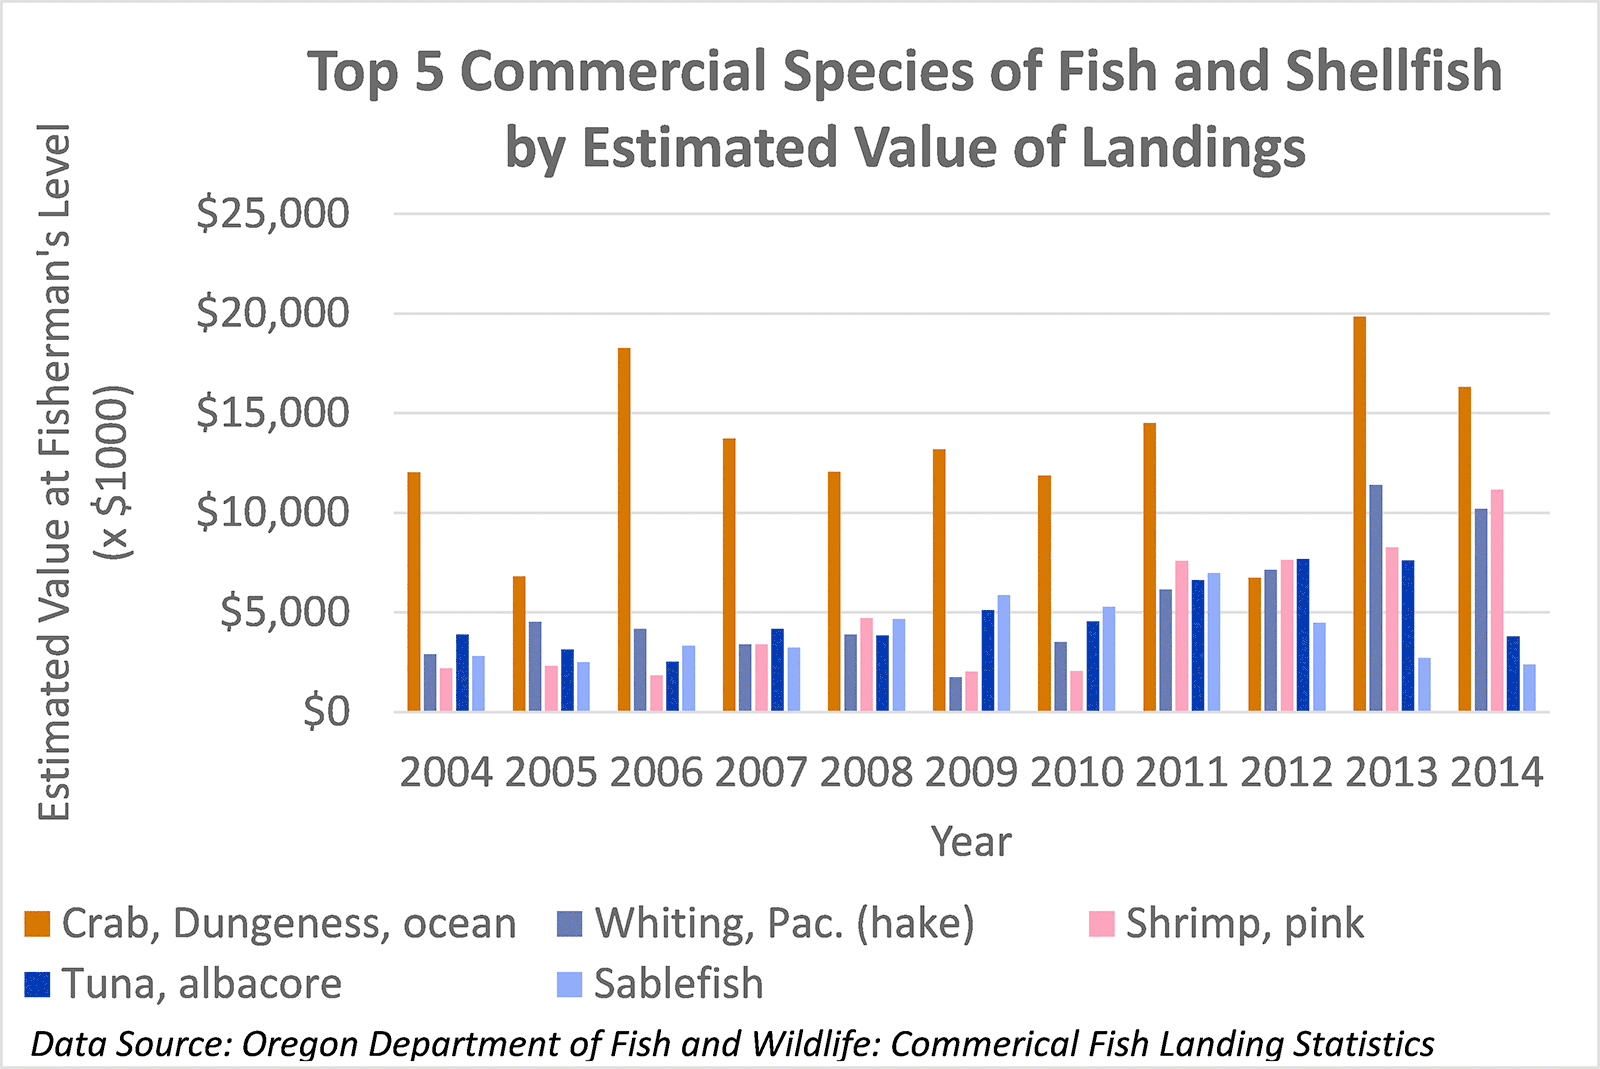 Top 5 Commercial Species of Fish and Shellfish by Estimated Value of Landings